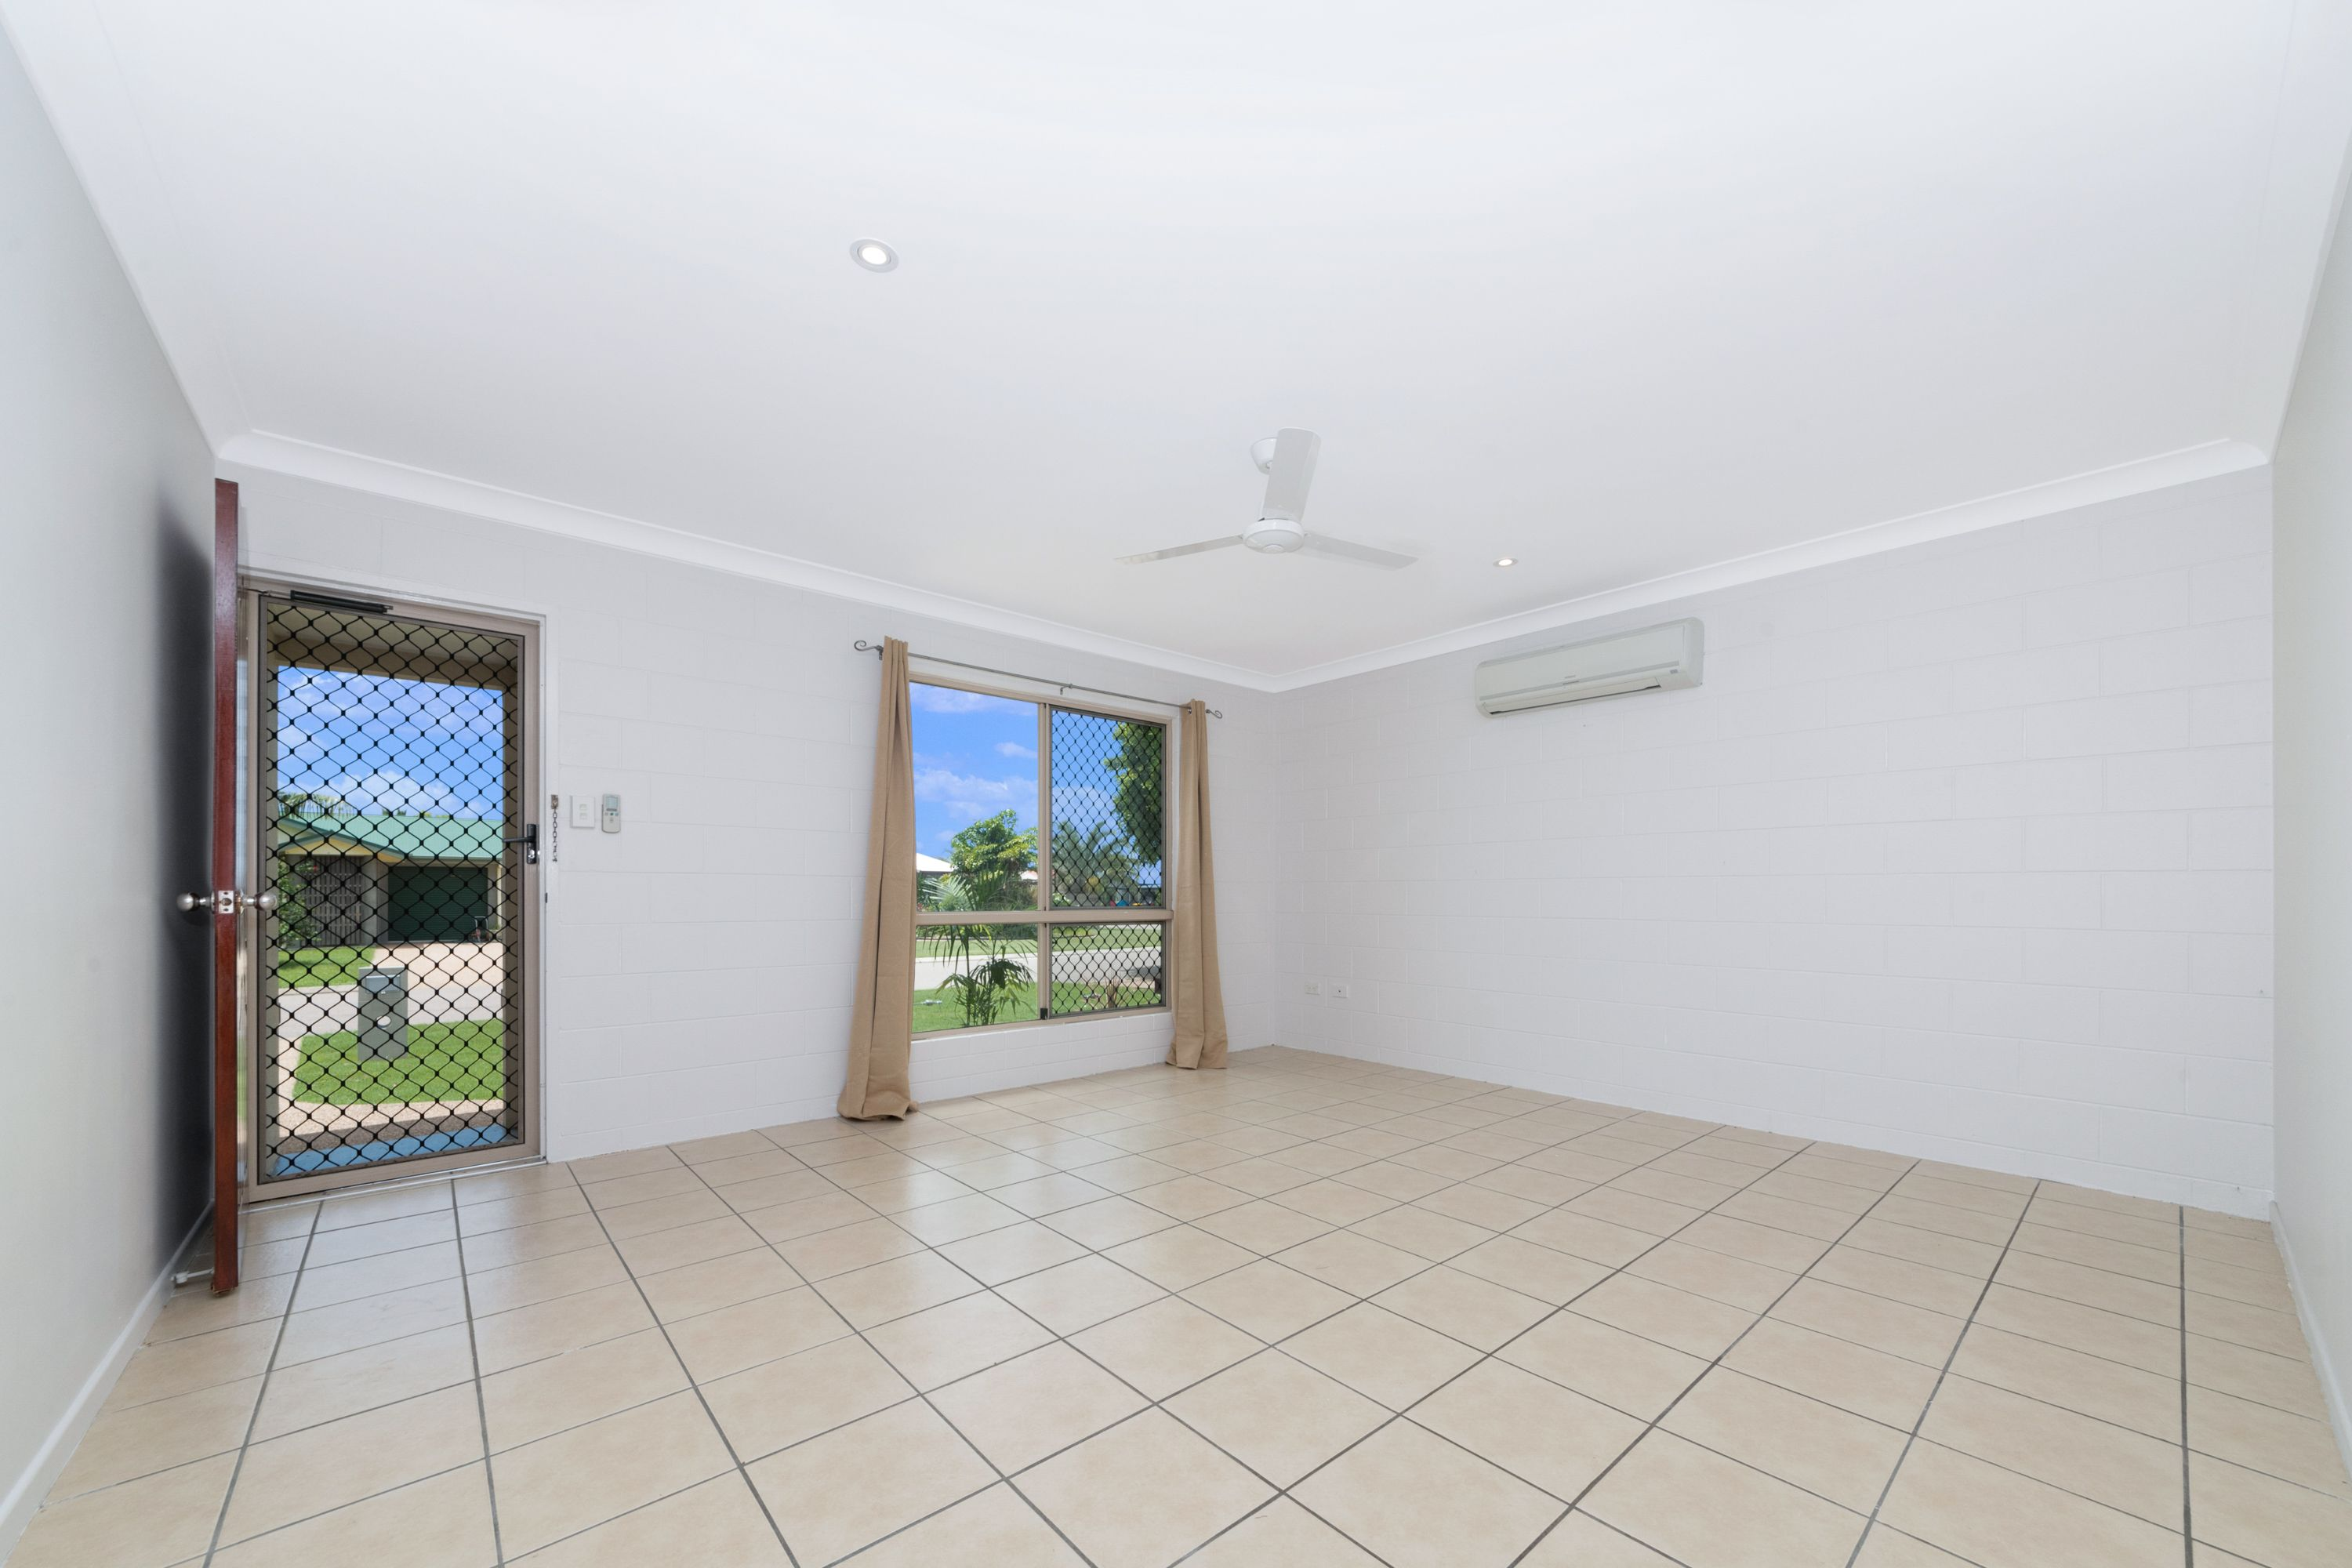 15 Eider Court, Condon, QLD 4815